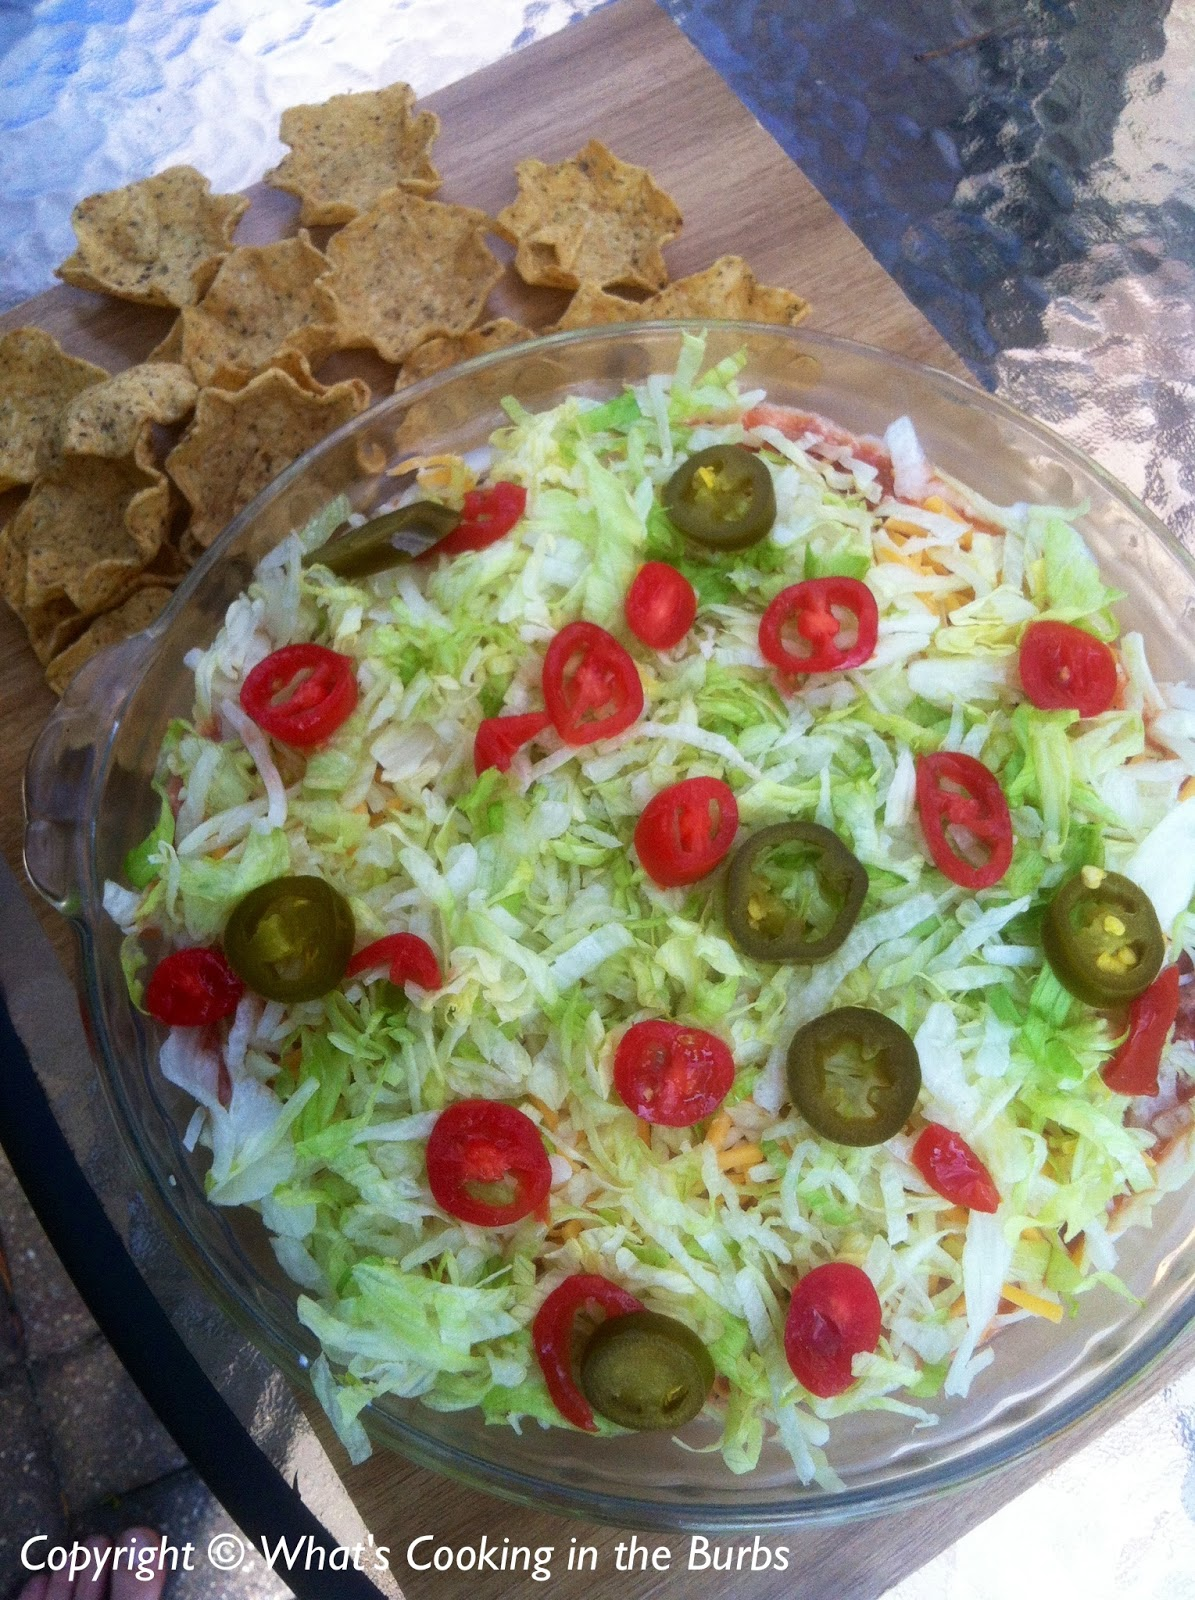 What's Cooking in the Burbs: Skinny Taco Dip